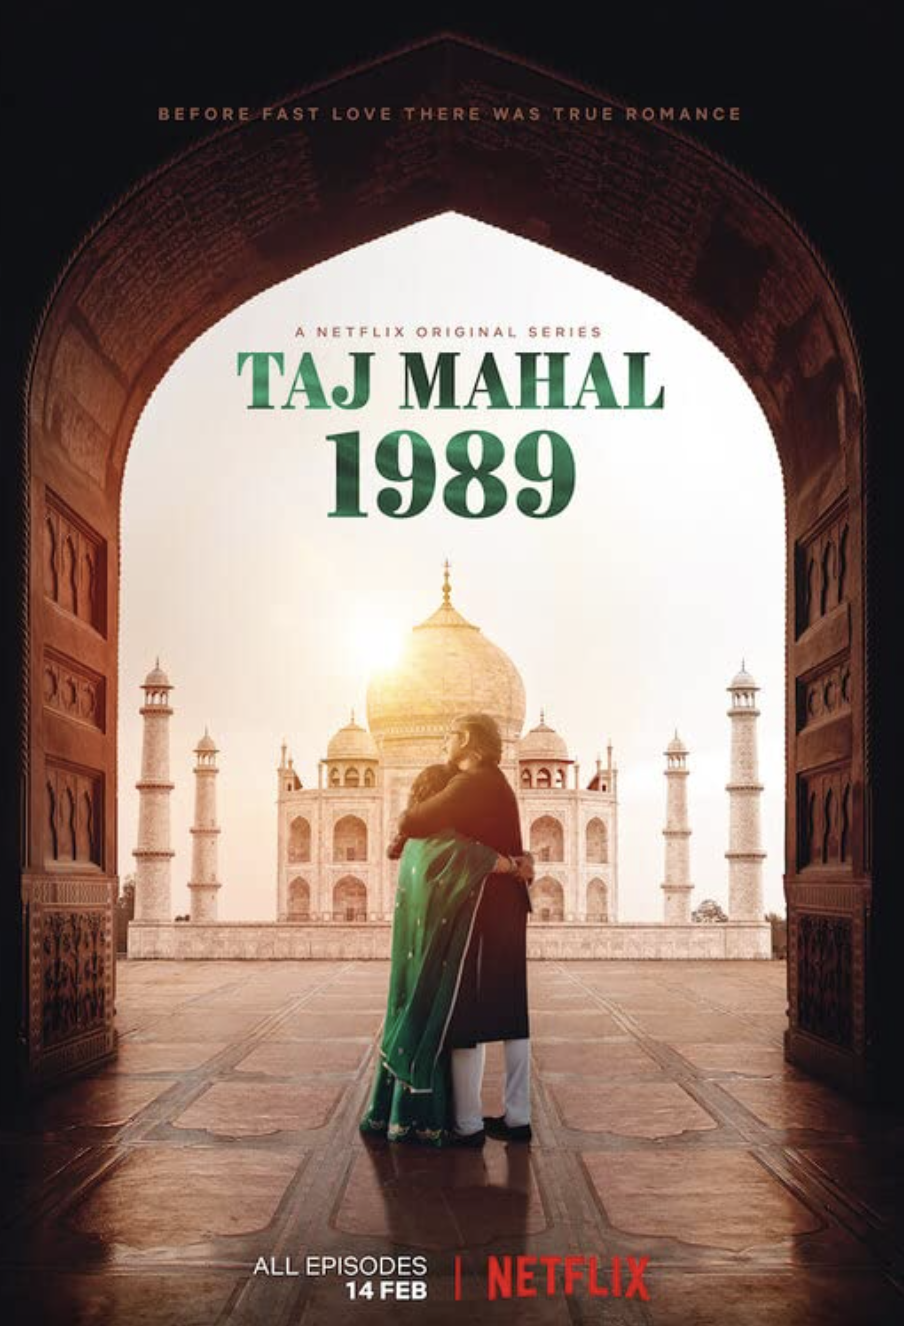 """<p>Set in Lucknow, India, this dramedy breaks the fourth wall to have frank conversations with viewers about love. The multigenerational characters — played by <strong>Neeraj Kabi</strong>, <strong>Geetanjali Kulkarni</strong>, <strong>Sheeba Chaddha</strong> and <strong>Danish Husain</strong> — explore the politics of romance through friendships, new love and marriage. With only seven episodes, you could easily watch it all over a weekend.</p><p><a class=""""link rapid-noclick-resp"""" href=""""https://www.netflix.com/title/81183493"""" rel=""""nofollow noopener"""" target=""""_blank"""" data-ylk=""""slk:STREAM NOW"""">STREAM NOW</a></p>"""